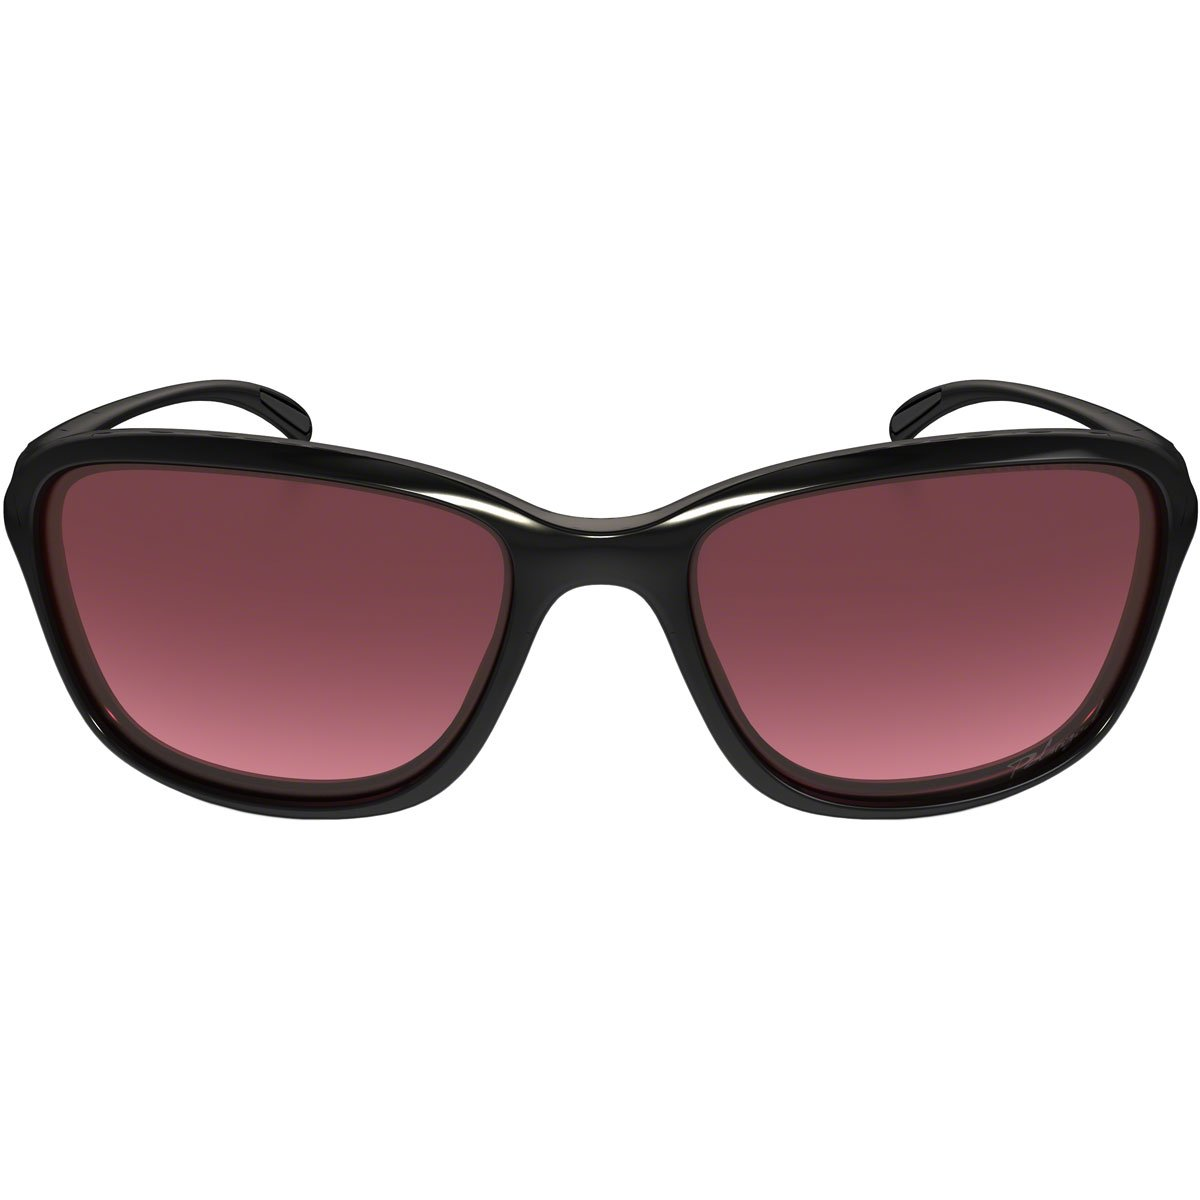 416c6d9e26 Amazon.com  Oakley Womens Unstoppable Sunglasses Black Rose  Clothing